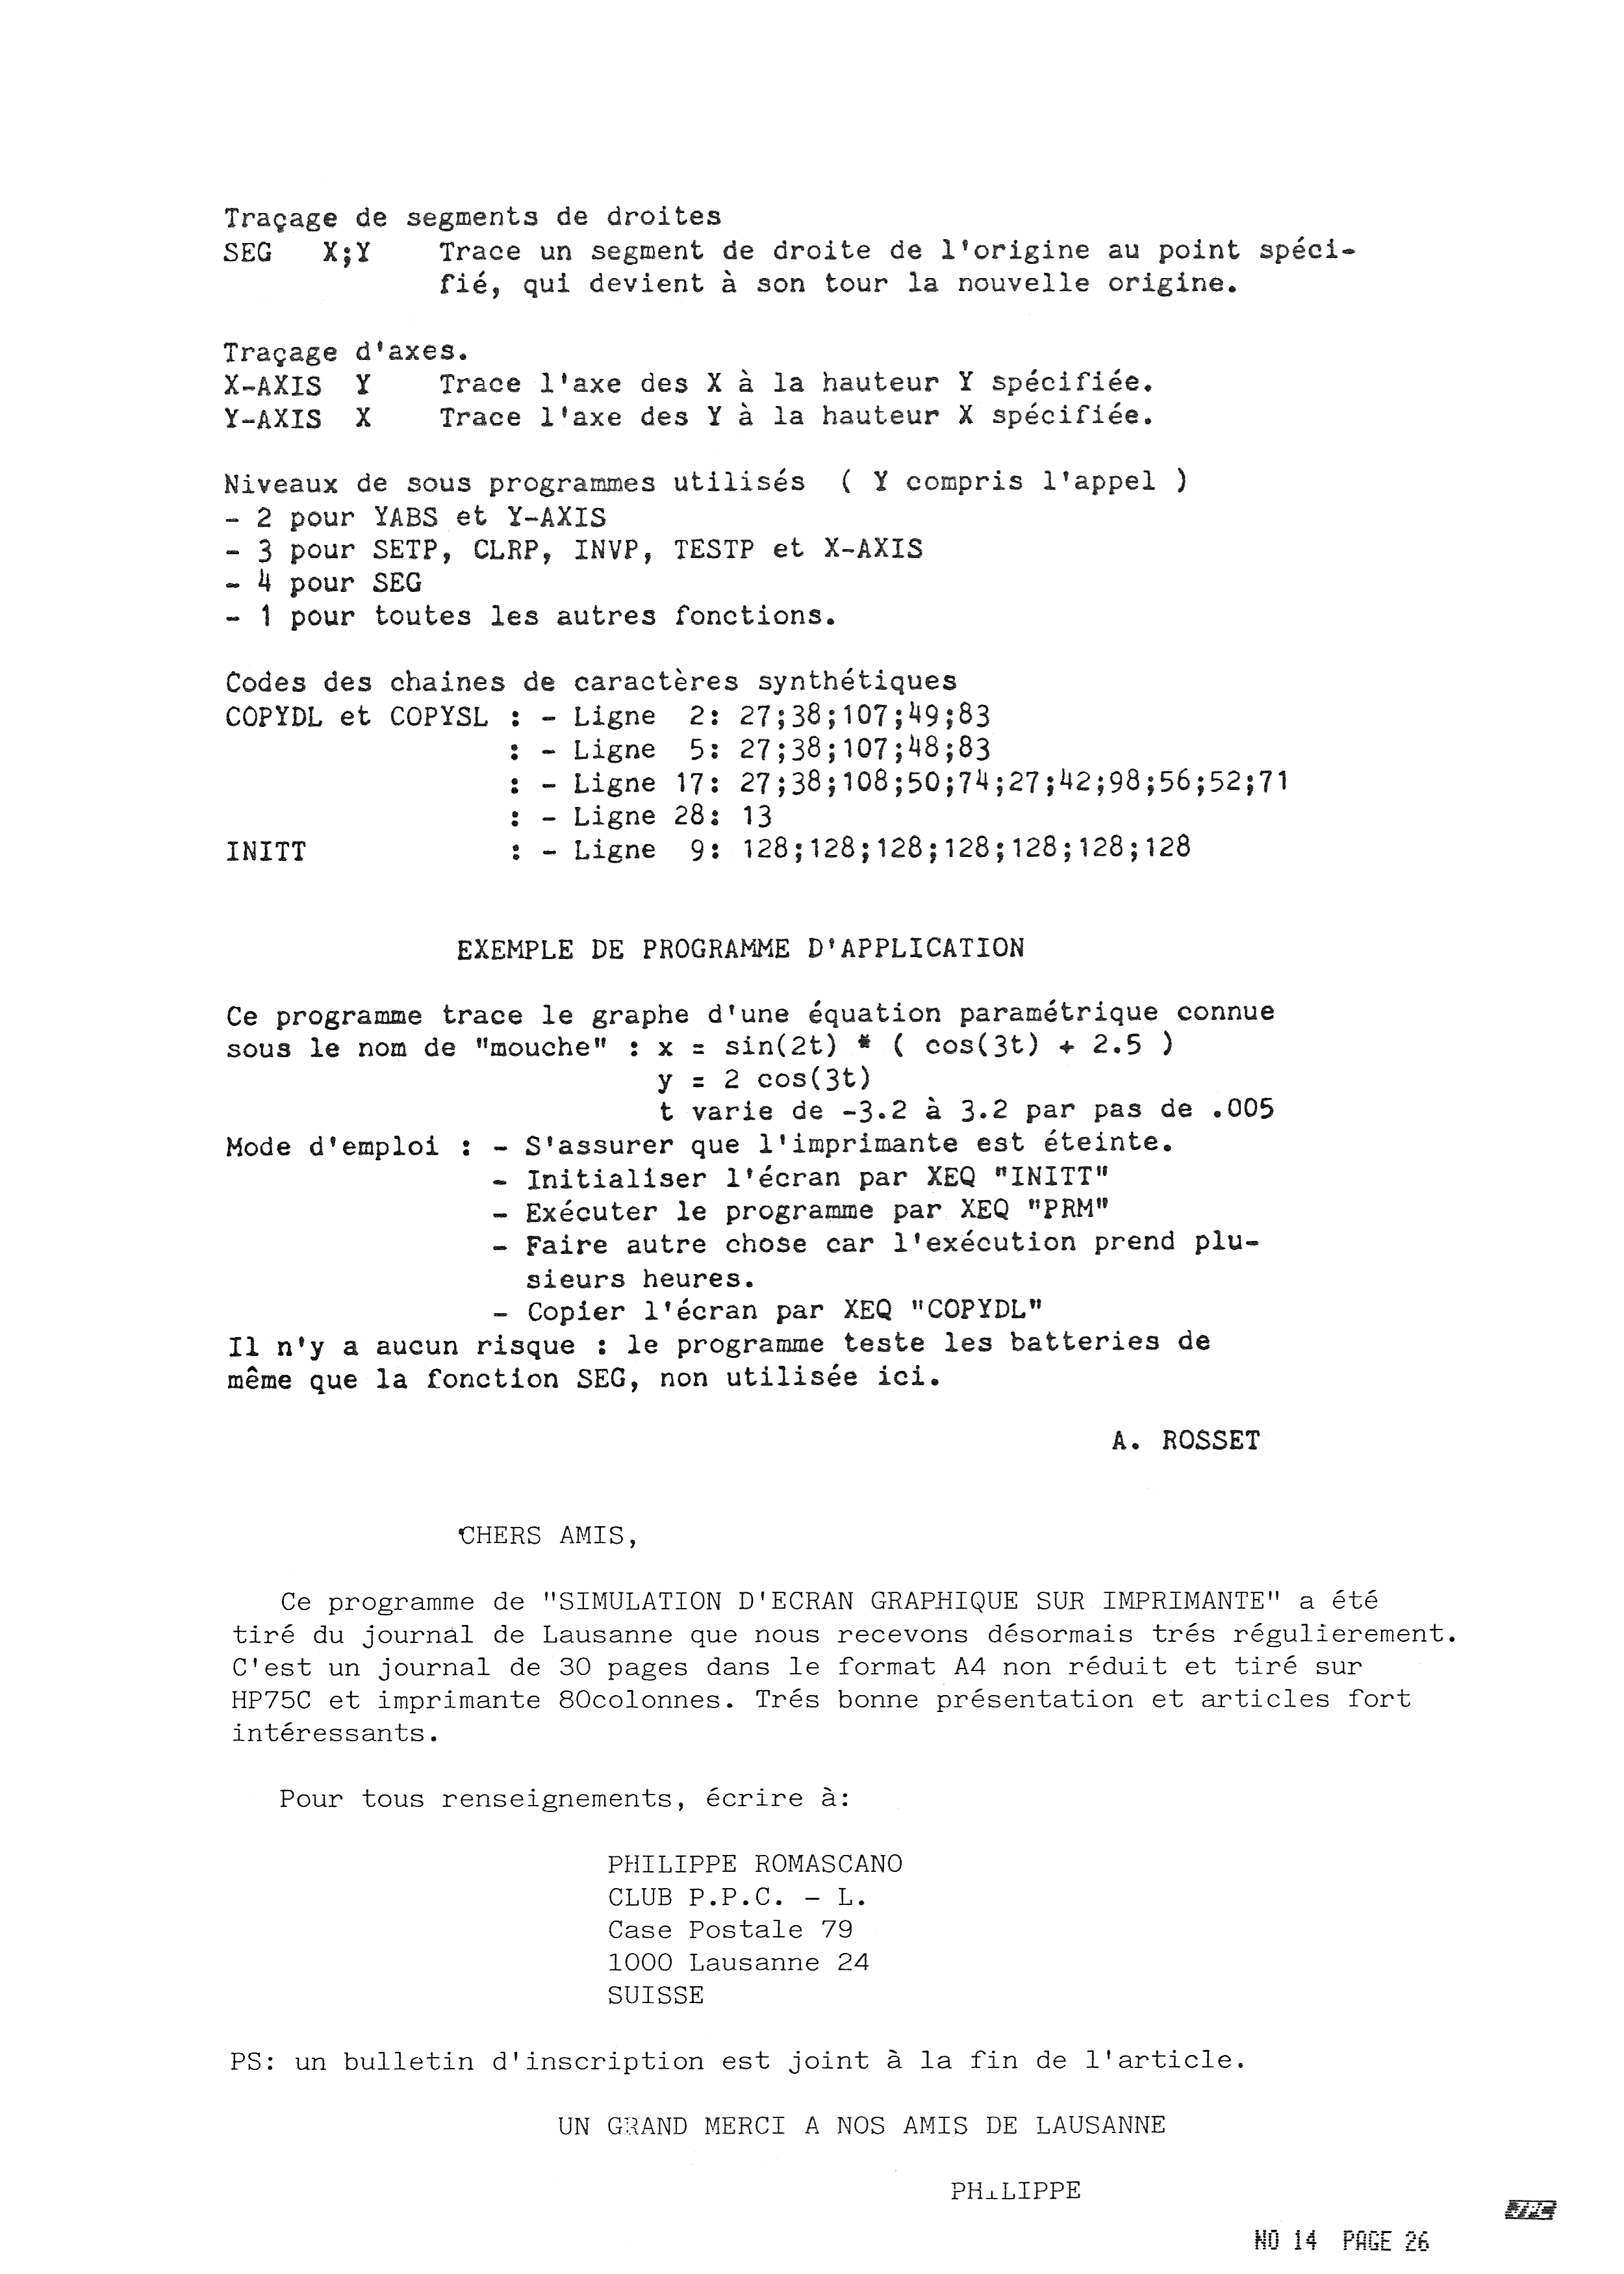 Jp-14-page-32-1000